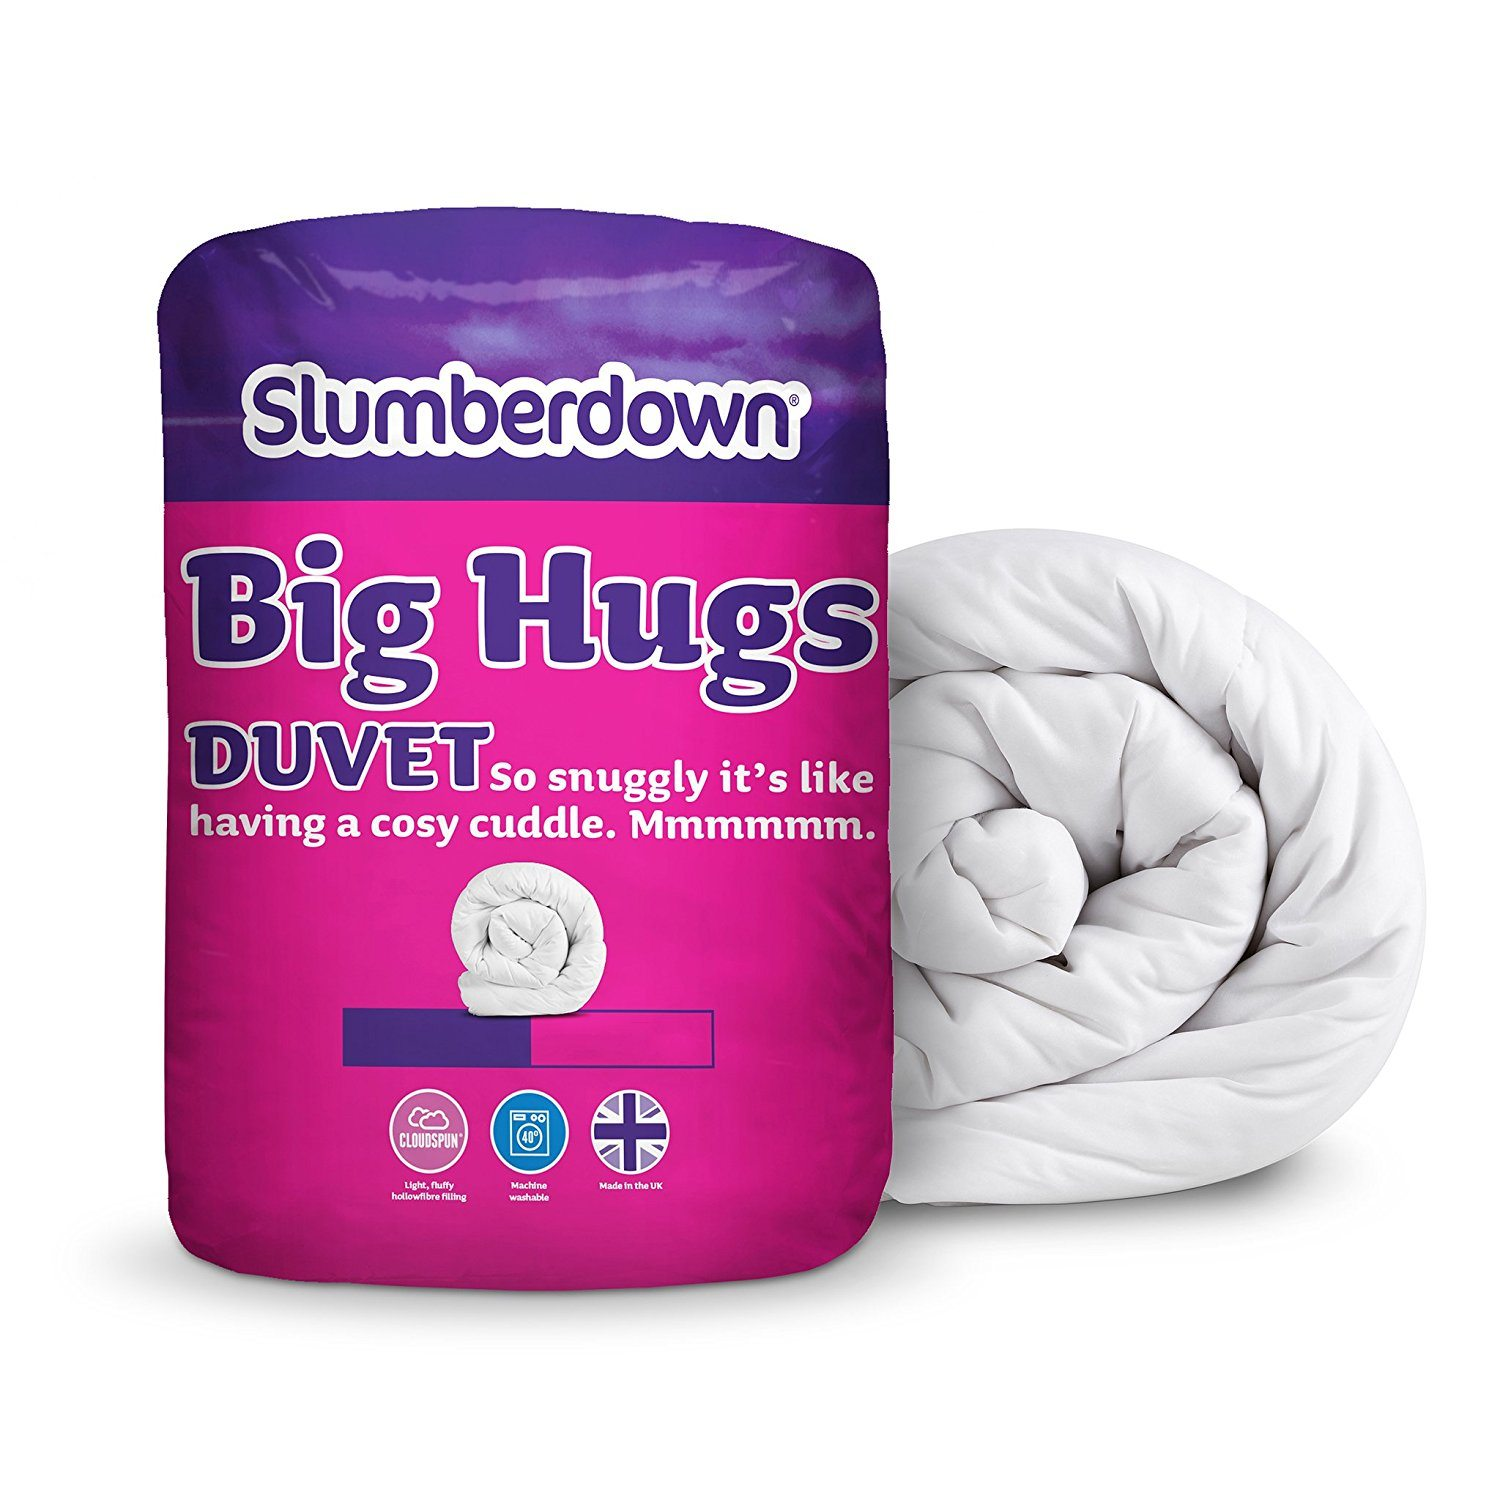 Slumberdown Big Hugs